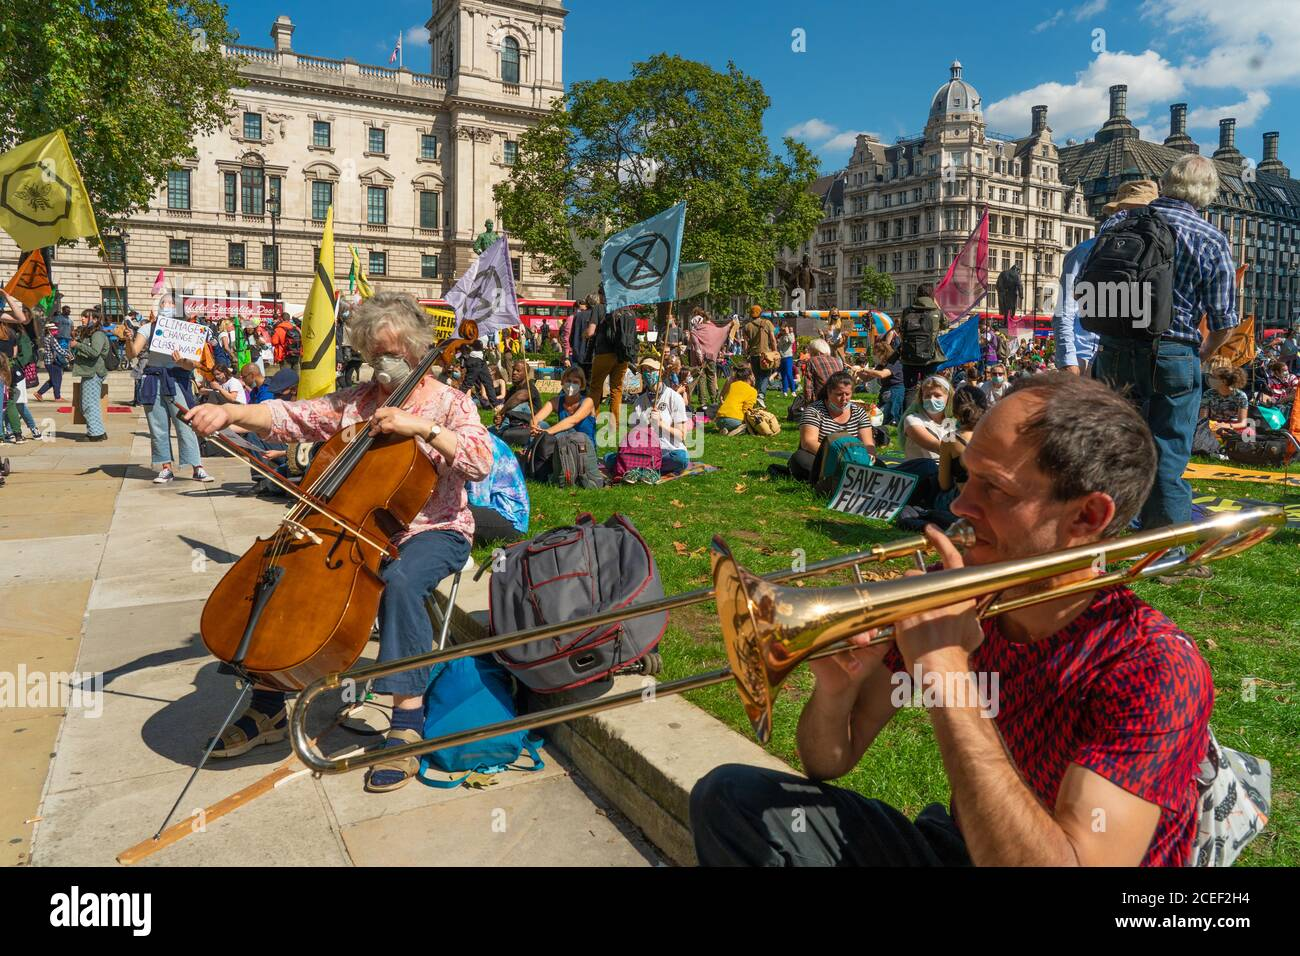 London, UK. Tuesday, September 1, 2020. A protest by Extinction Rebellion in Parliament Square in London in support of the Climate and Ecological Emergency (CEE) Bill. Photo: Roger Garfield/Alamy Live News Stock Photo